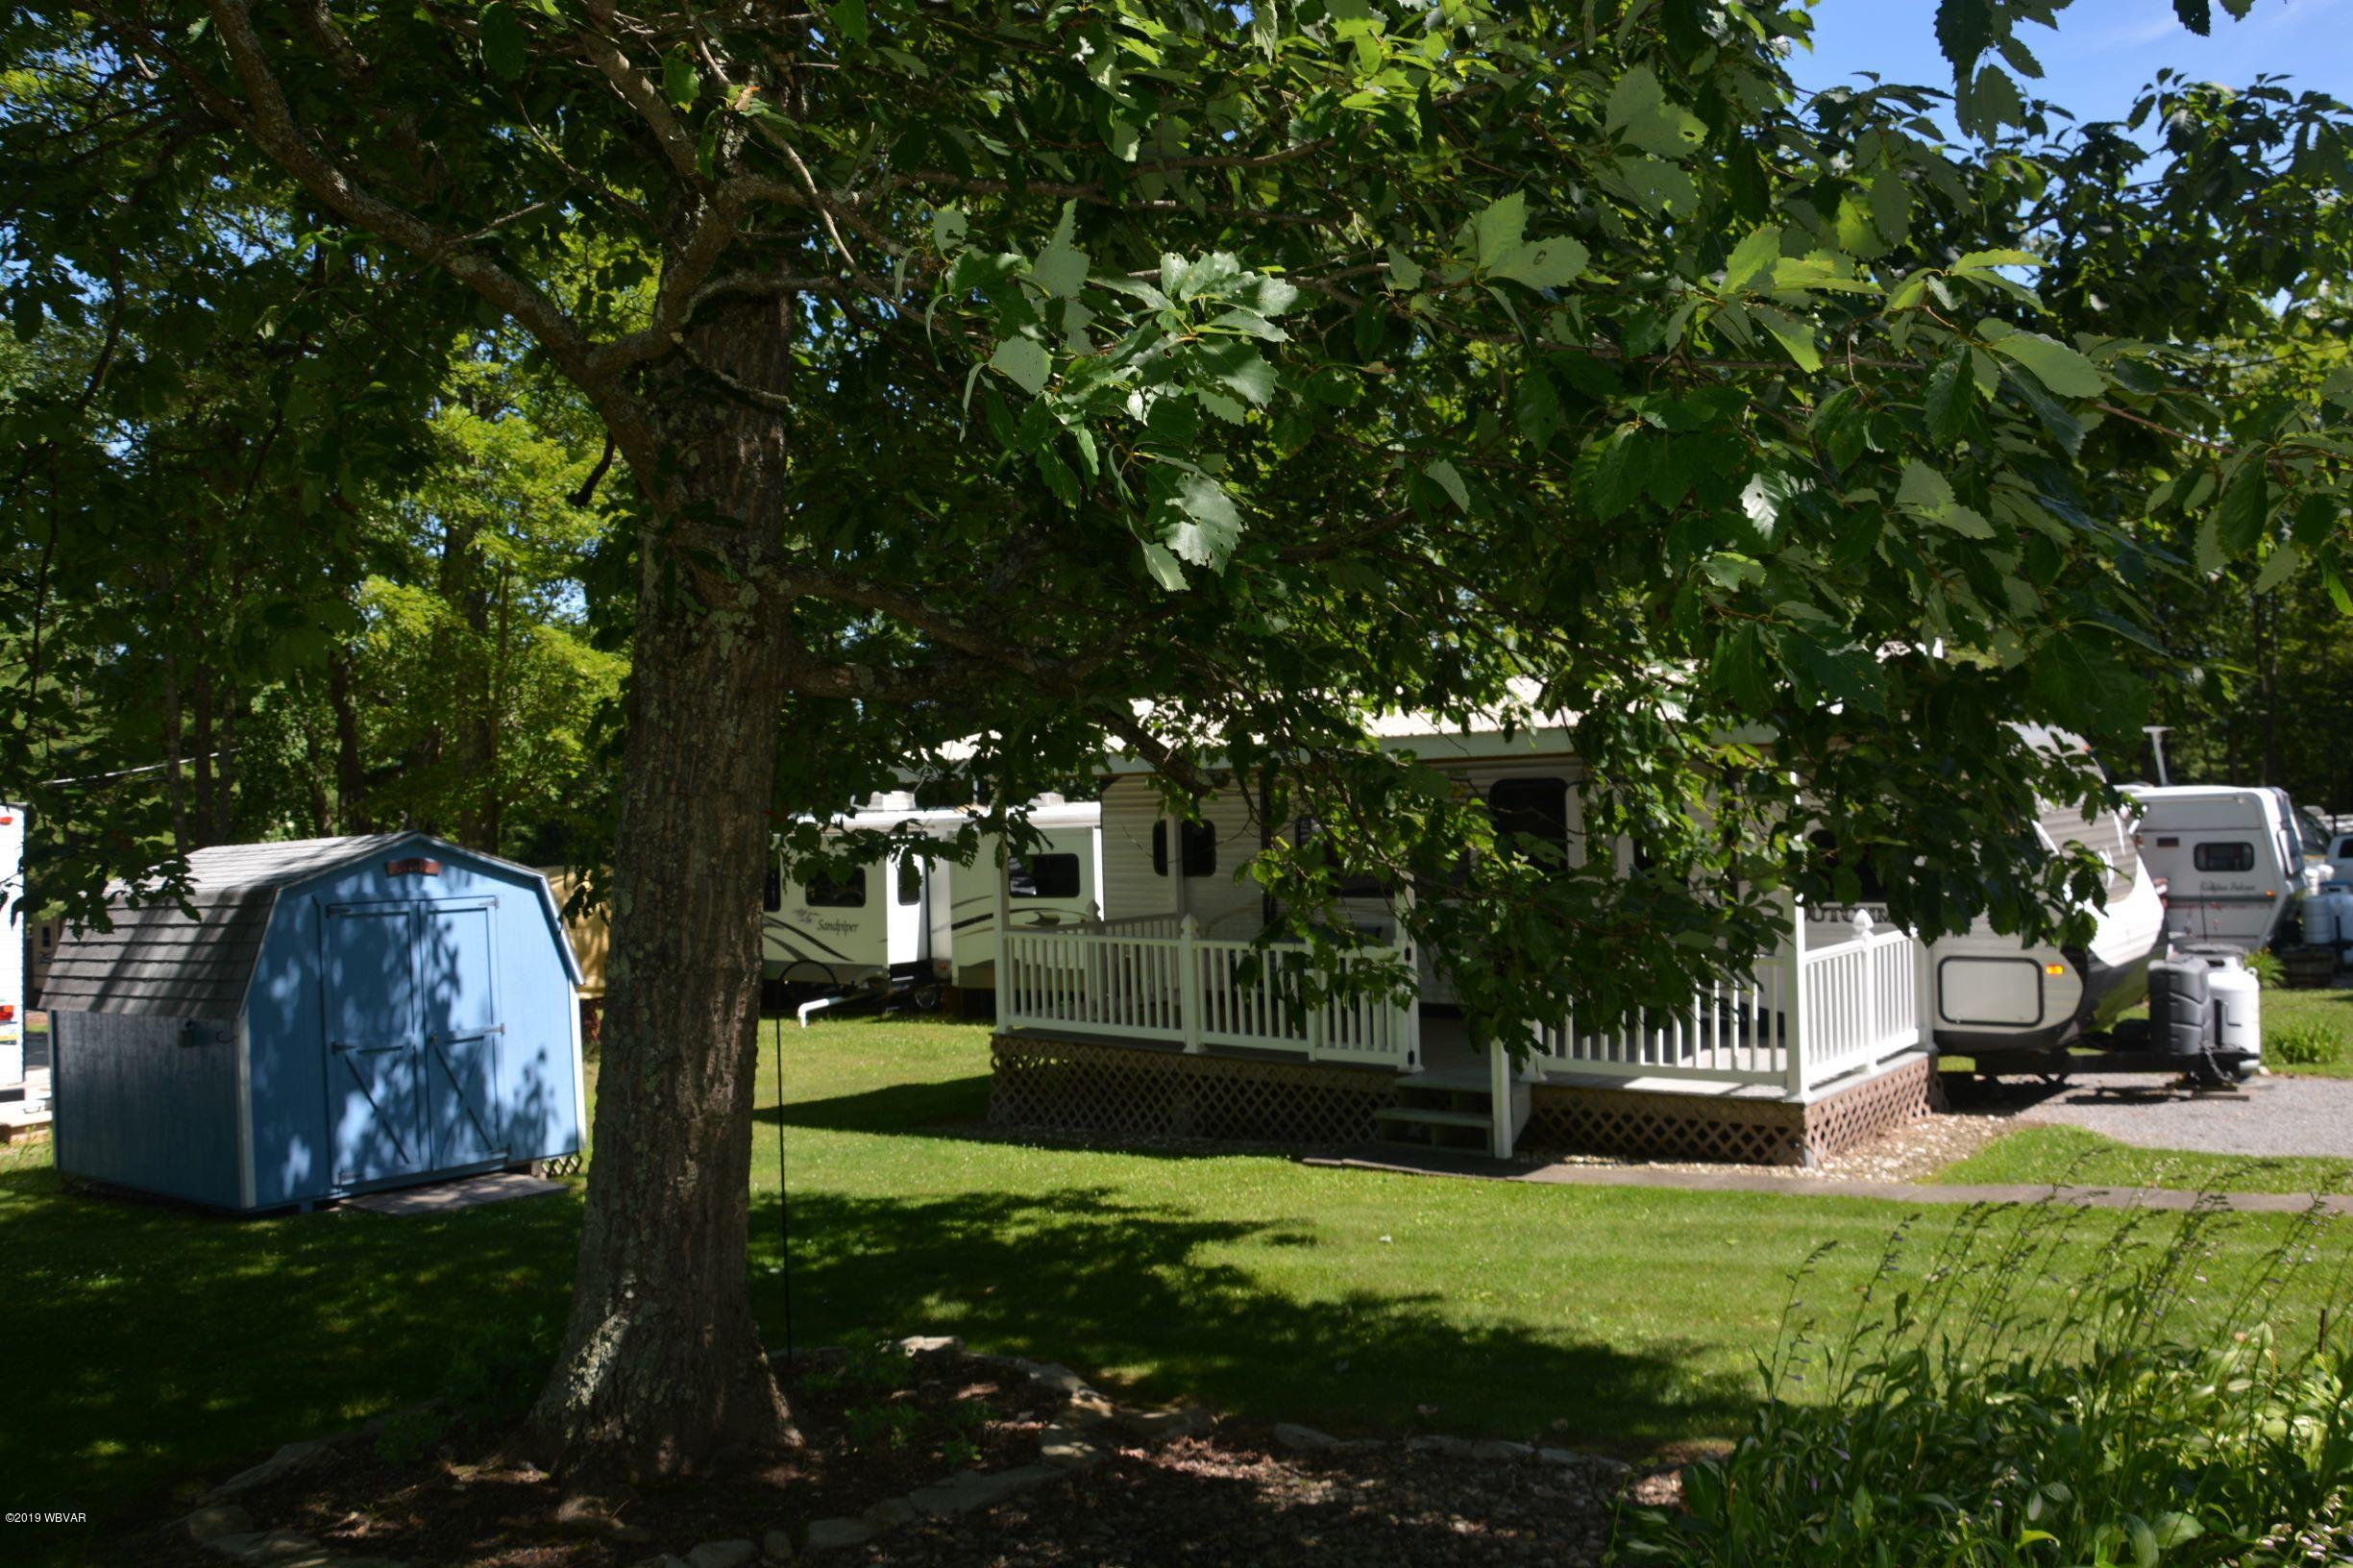 LOT #148 MILLERS LANE,Lock Haven,PA 17745,1 Bedroom Bedrooms,Cabin/vacation home,MILLERS,WB-87960